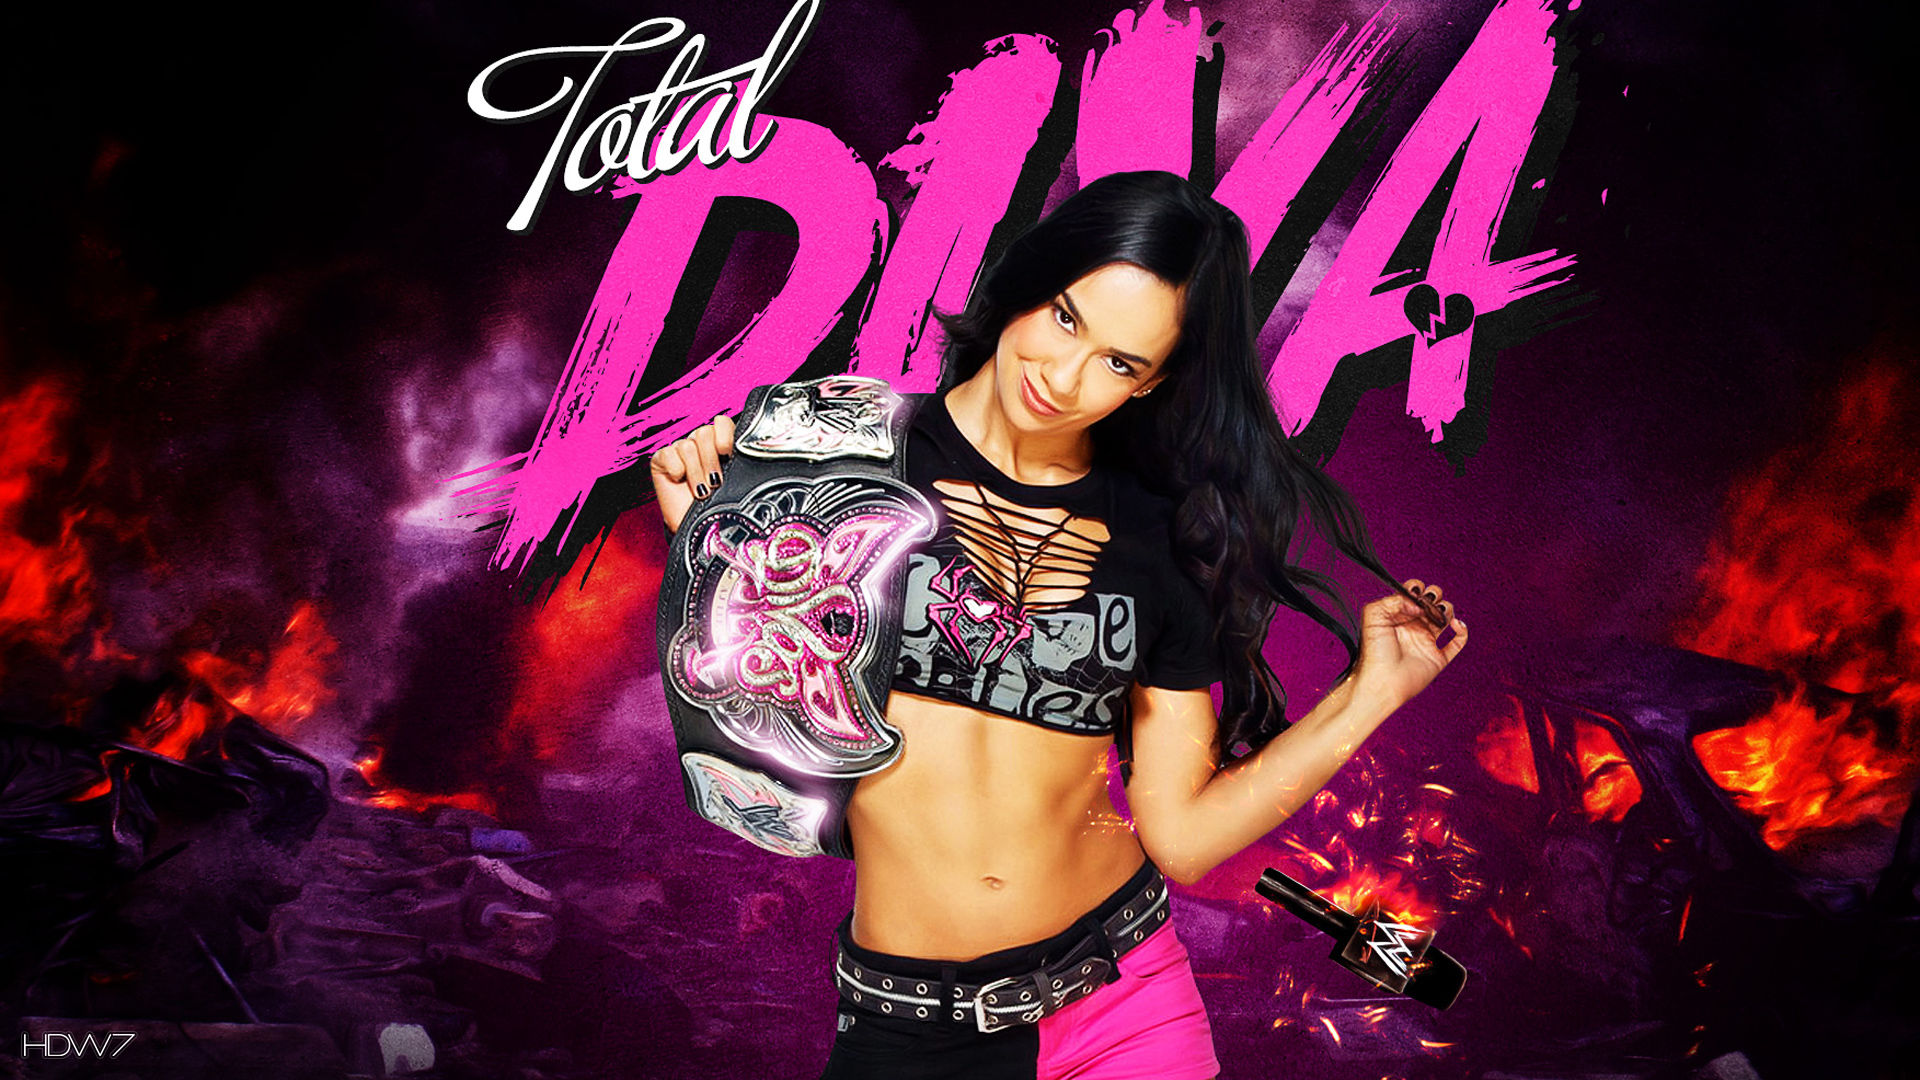 aj lee champion wallpaper 1920x1080